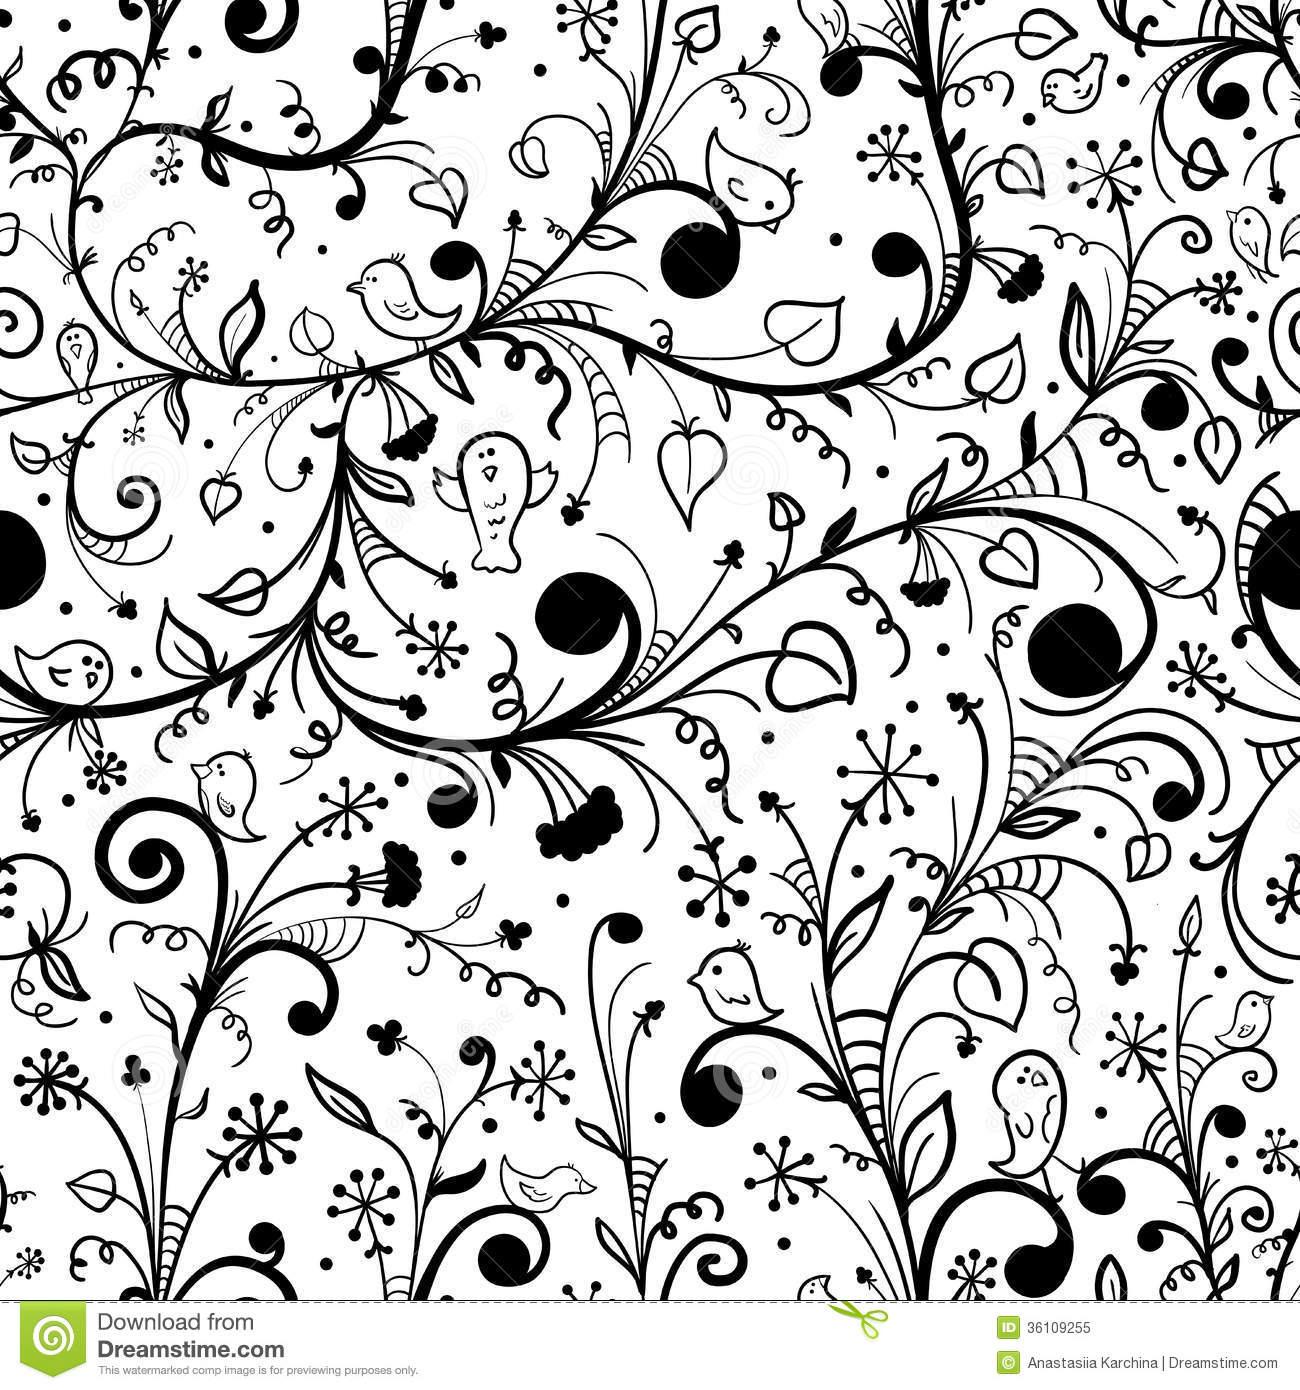 Black white floral seamless pattern stock vector illustration of black white floral seamless pattern mightylinksfo